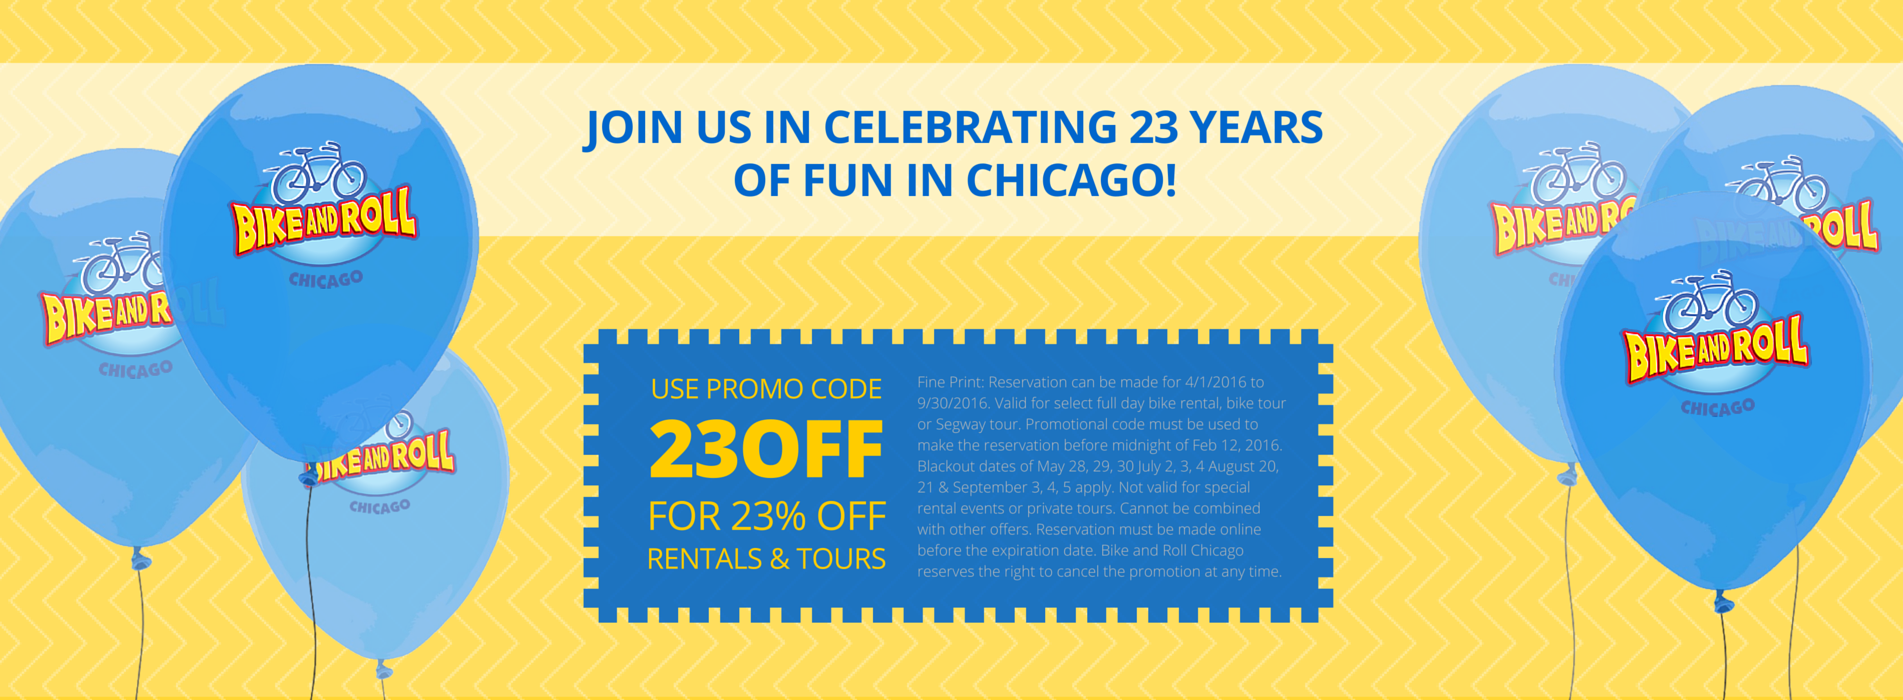 join-us-in-celebrating-23-years-of-fun-in-chicago-1